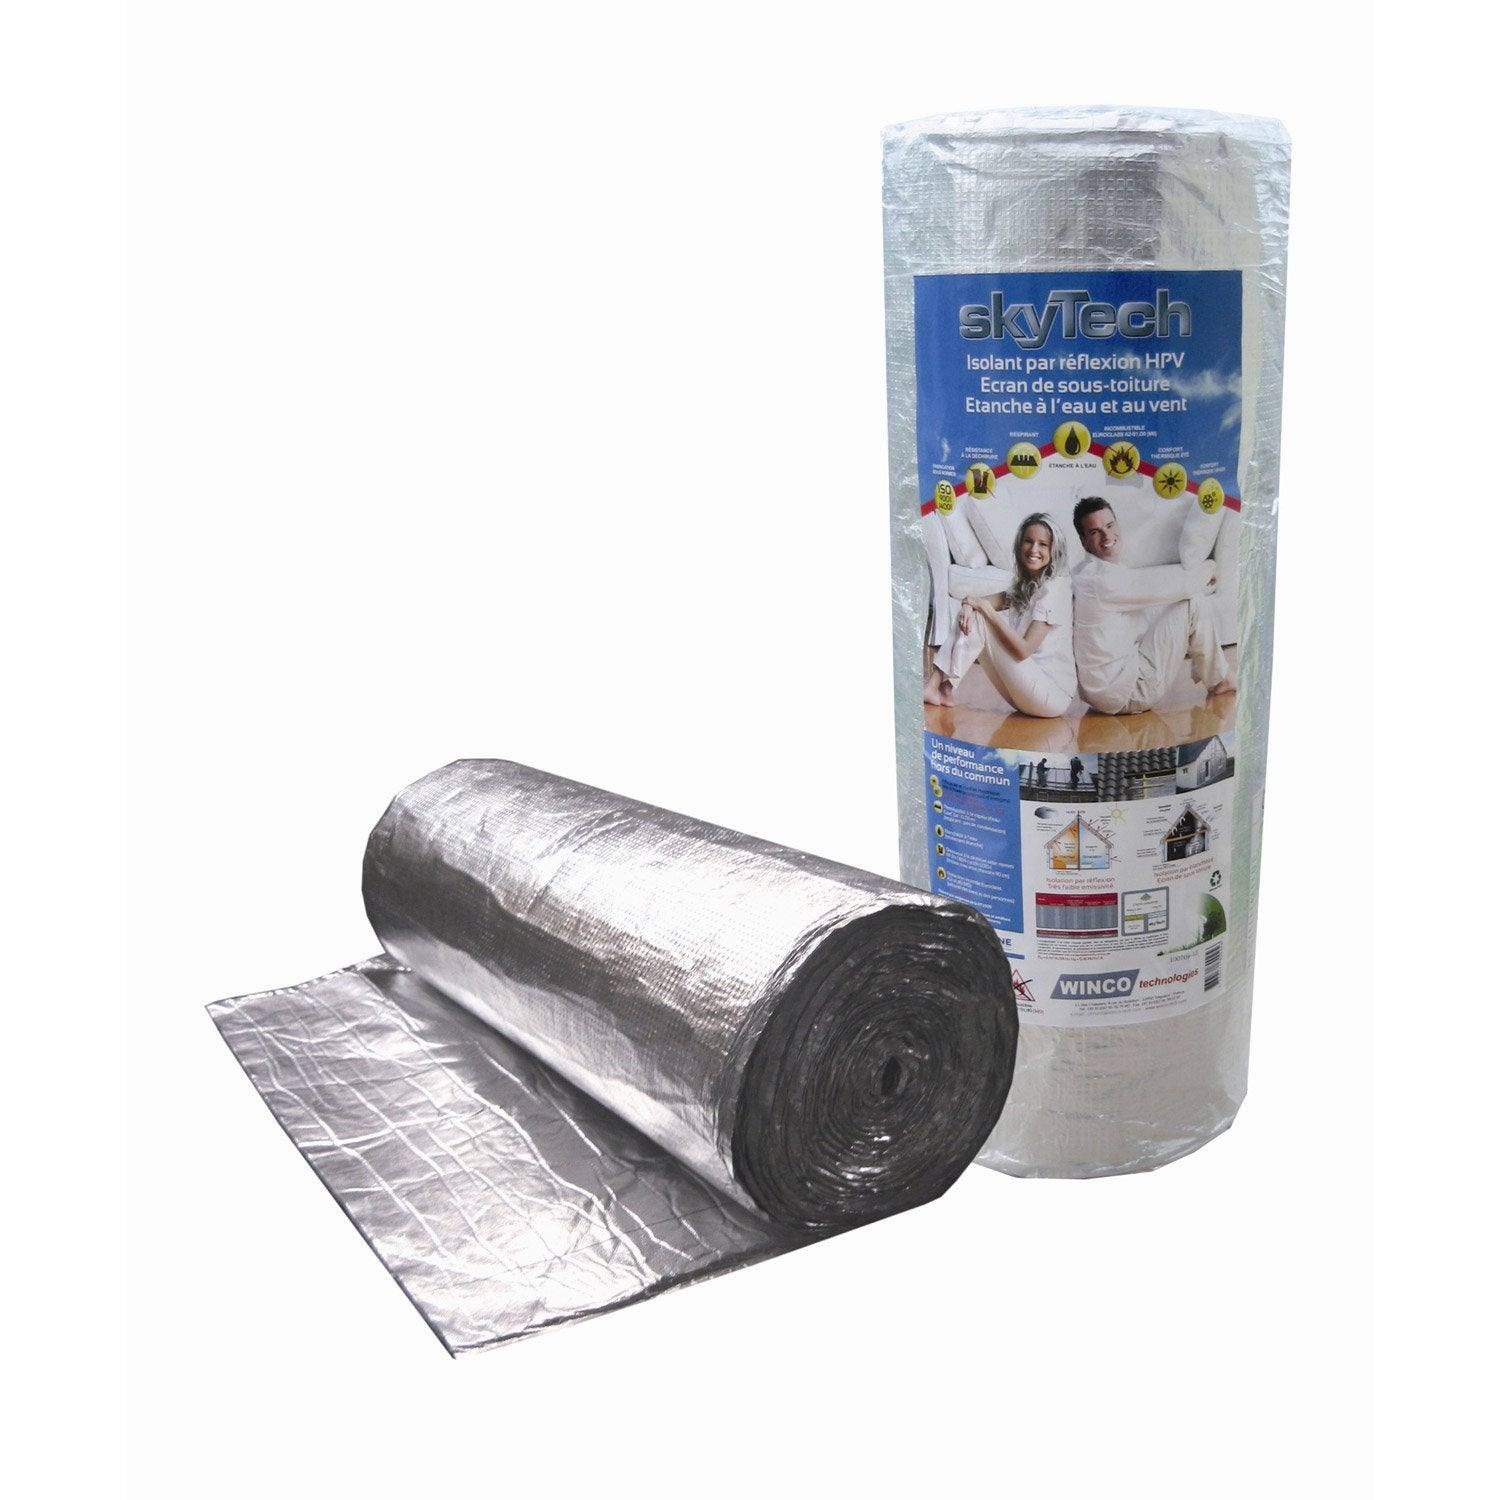 Rouleau skytech winco 18 x 1 m mm leroy merlin for Isolant pour mur exterieur